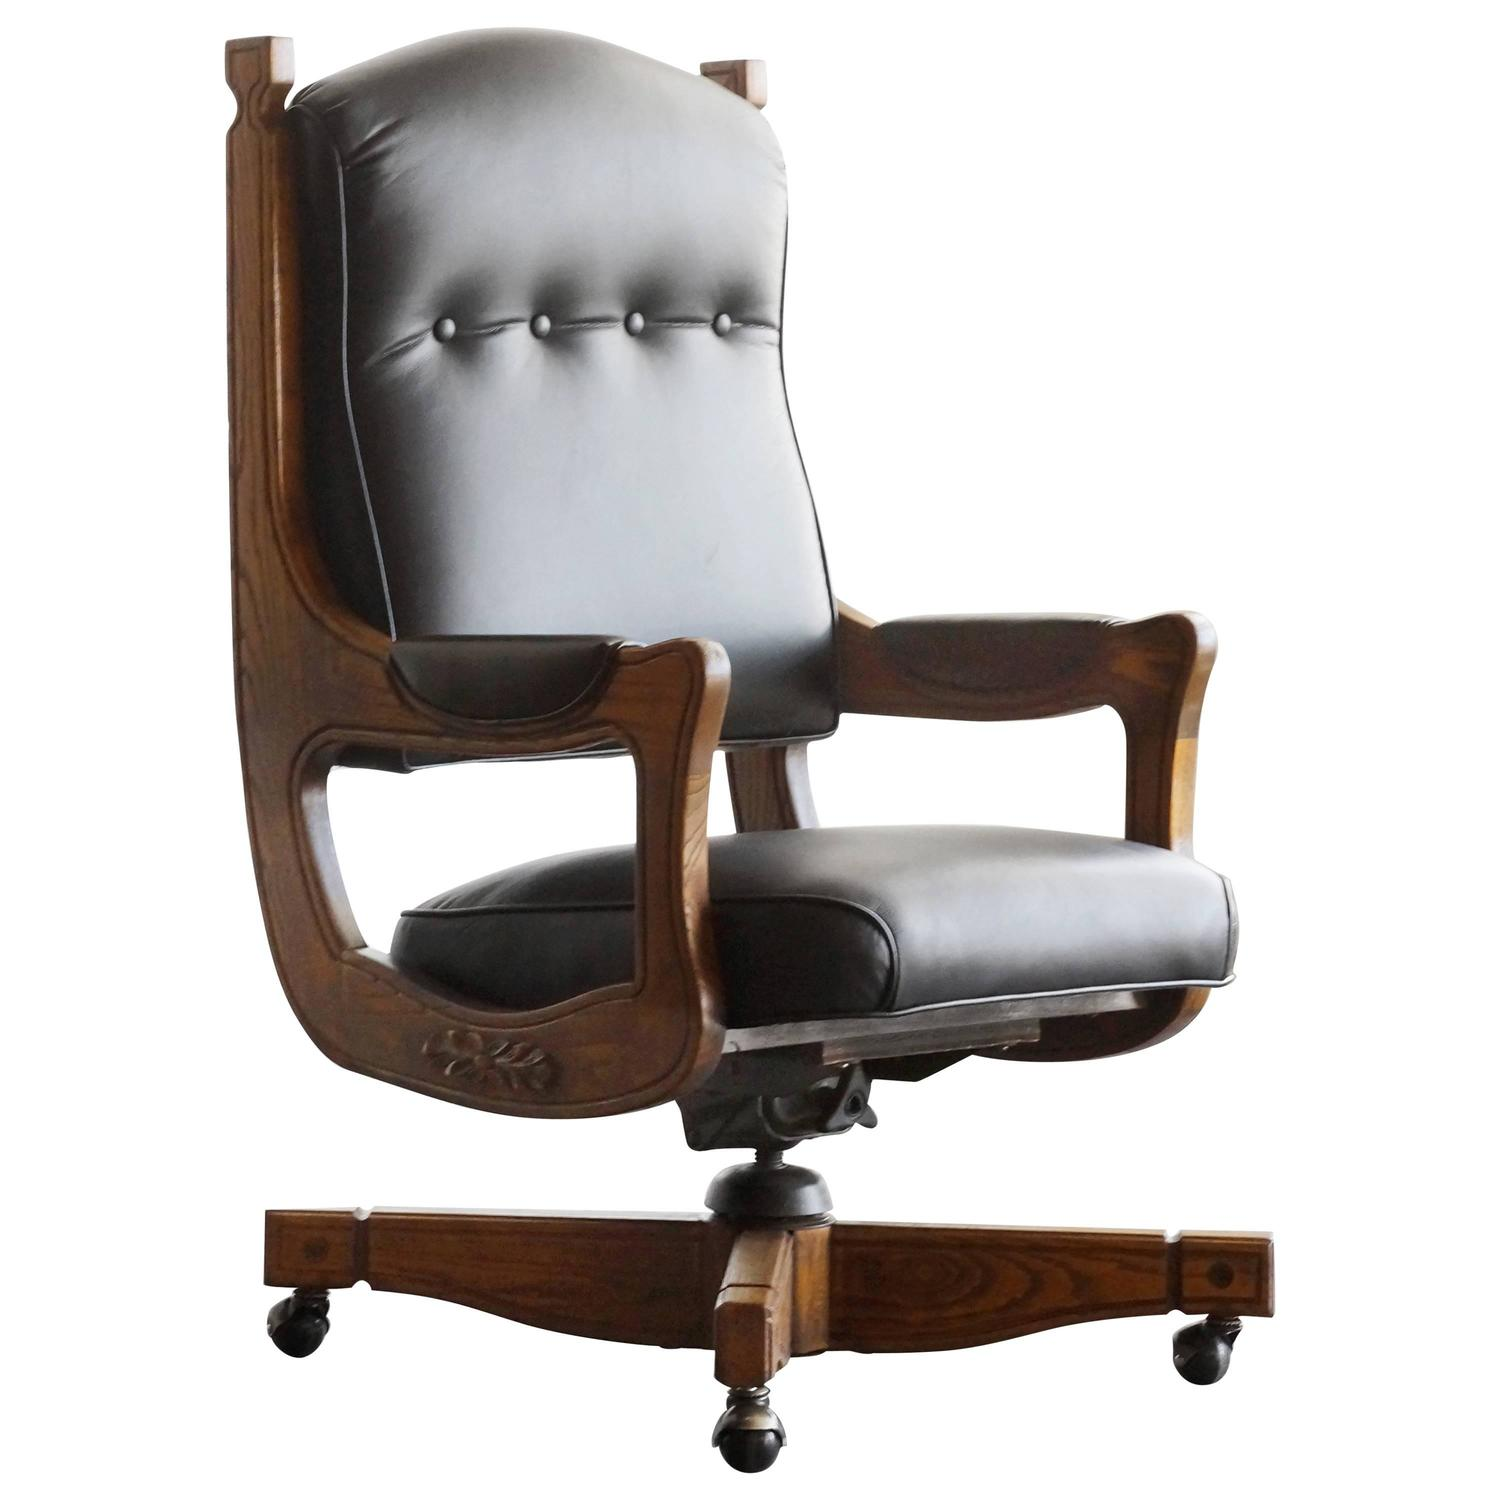 captains chair office chairs for women antique chesterfield in oak and leather at